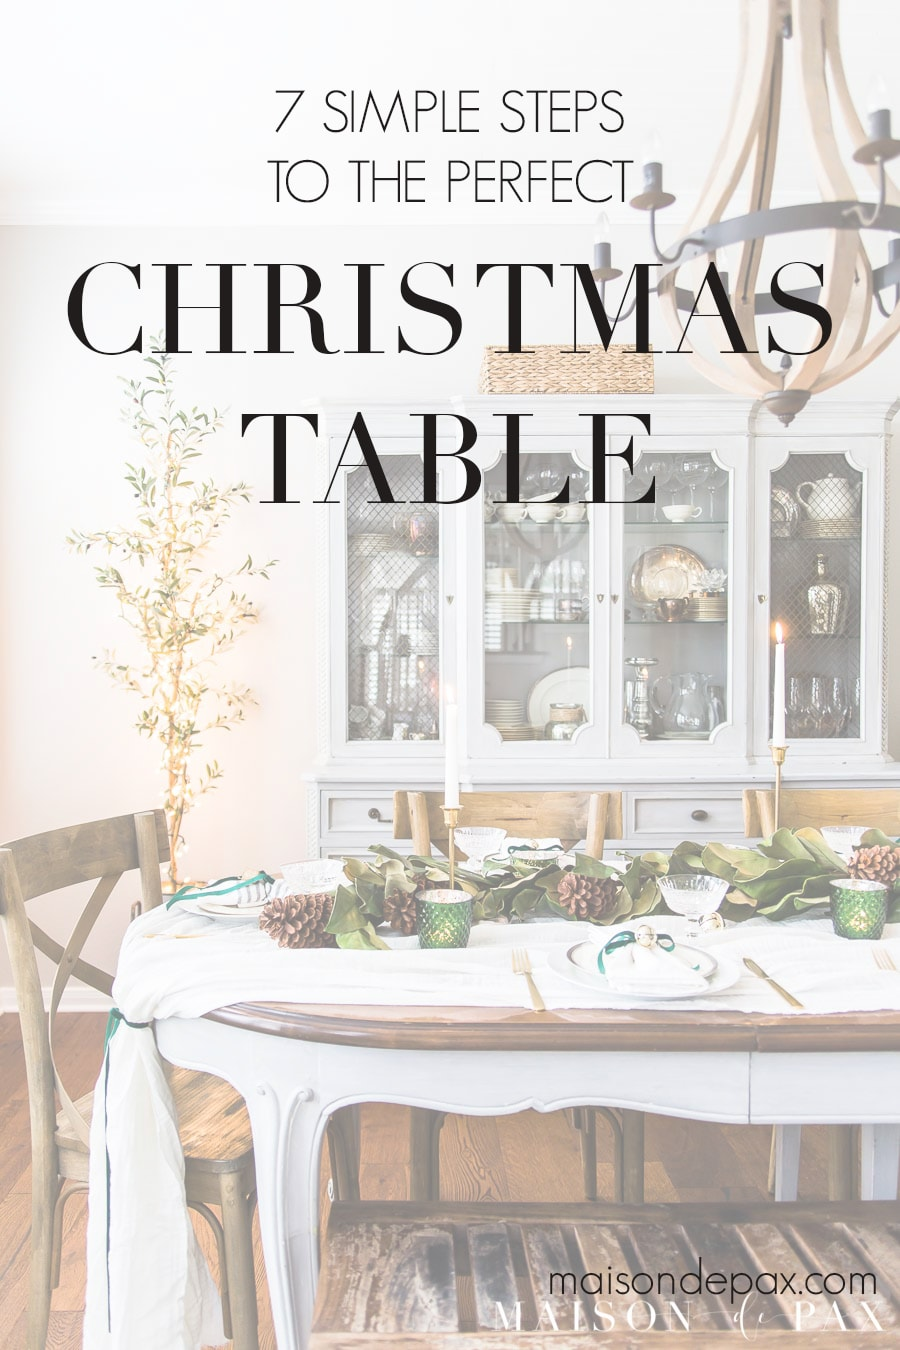 7 simple steps to the perfect Christmas table | Maison de Pax